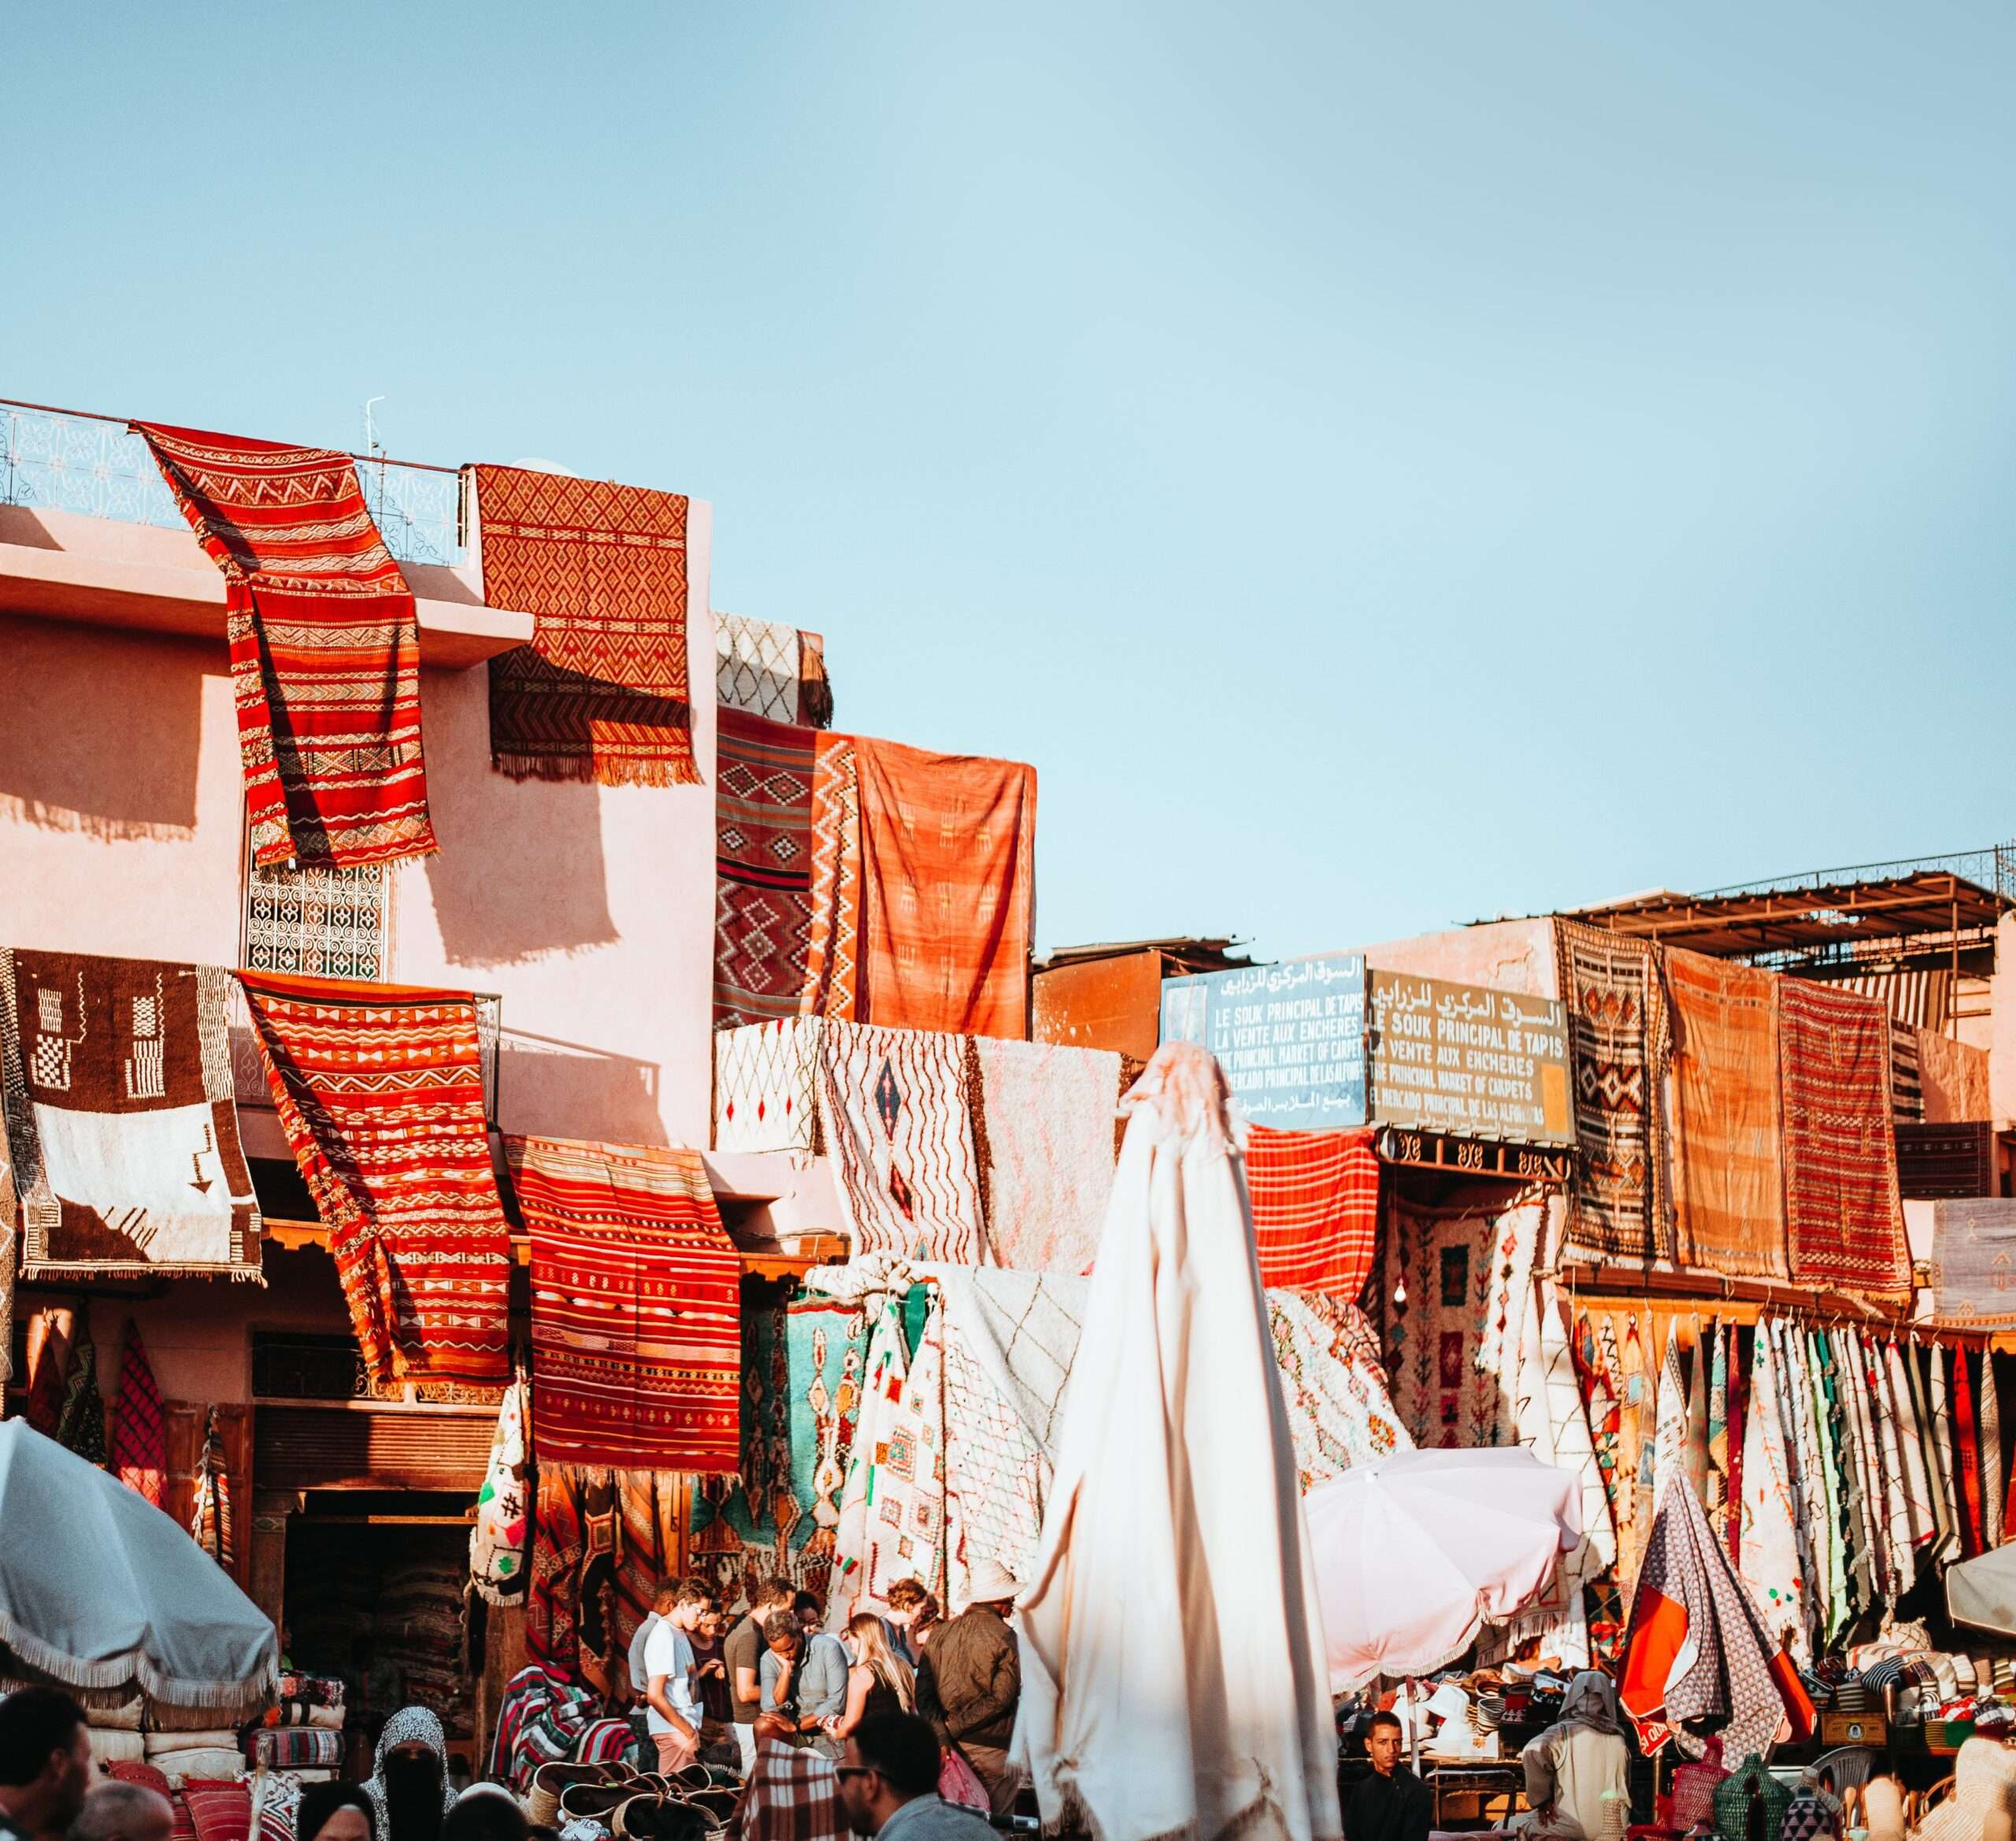 red patterned rugs hang across the front of a building at a market in Marrakesh